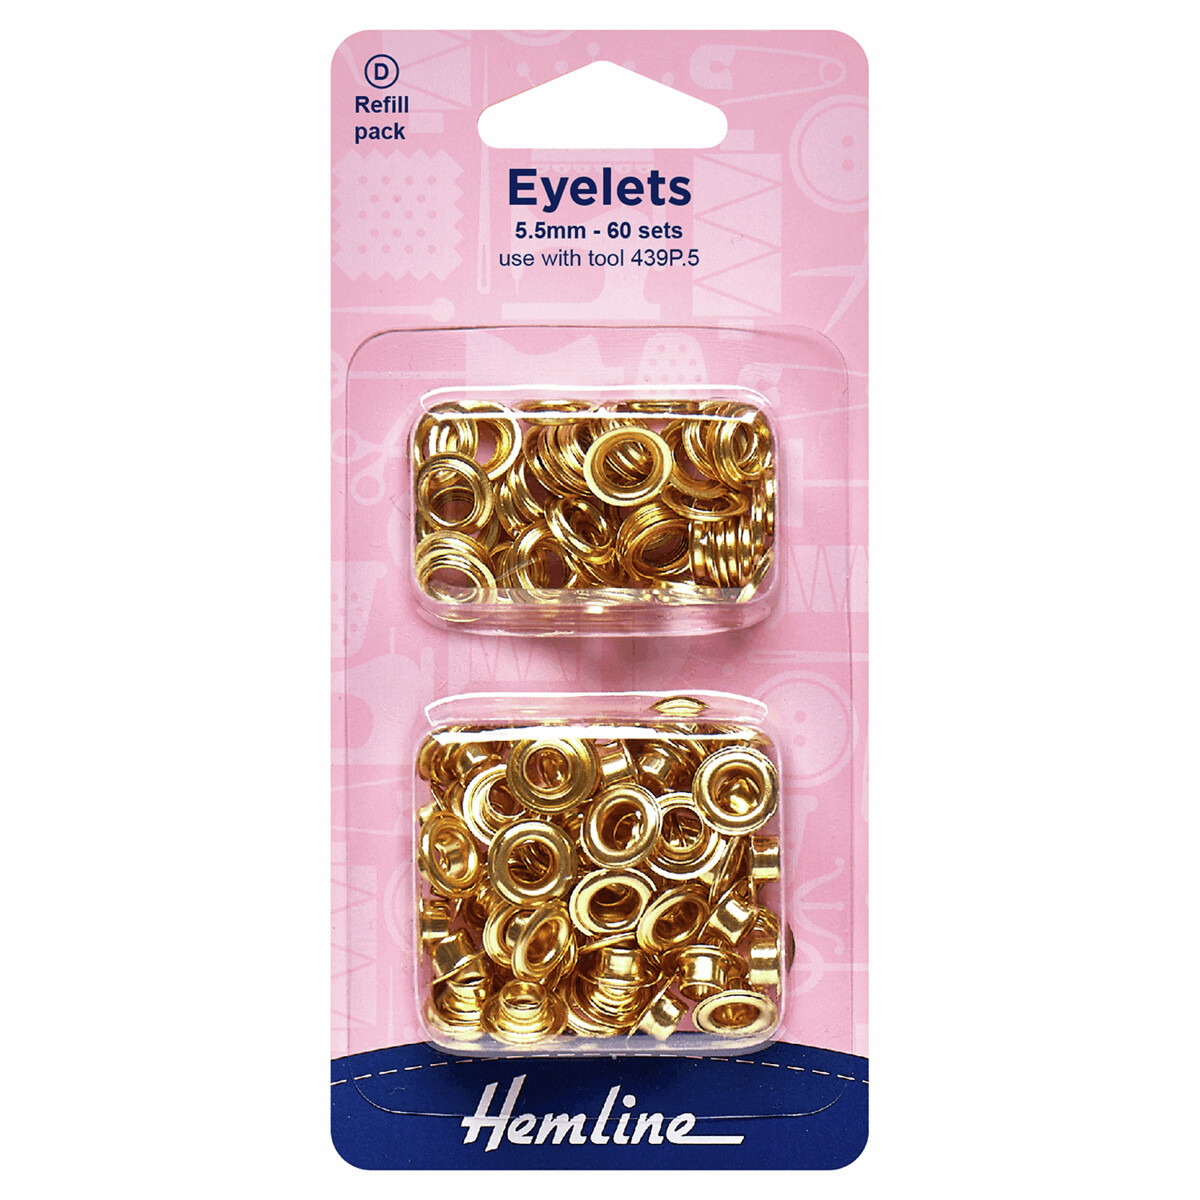 Eyelets Refill Pack: 5.5mm: Gold/Brass: (D): 60 Pieces